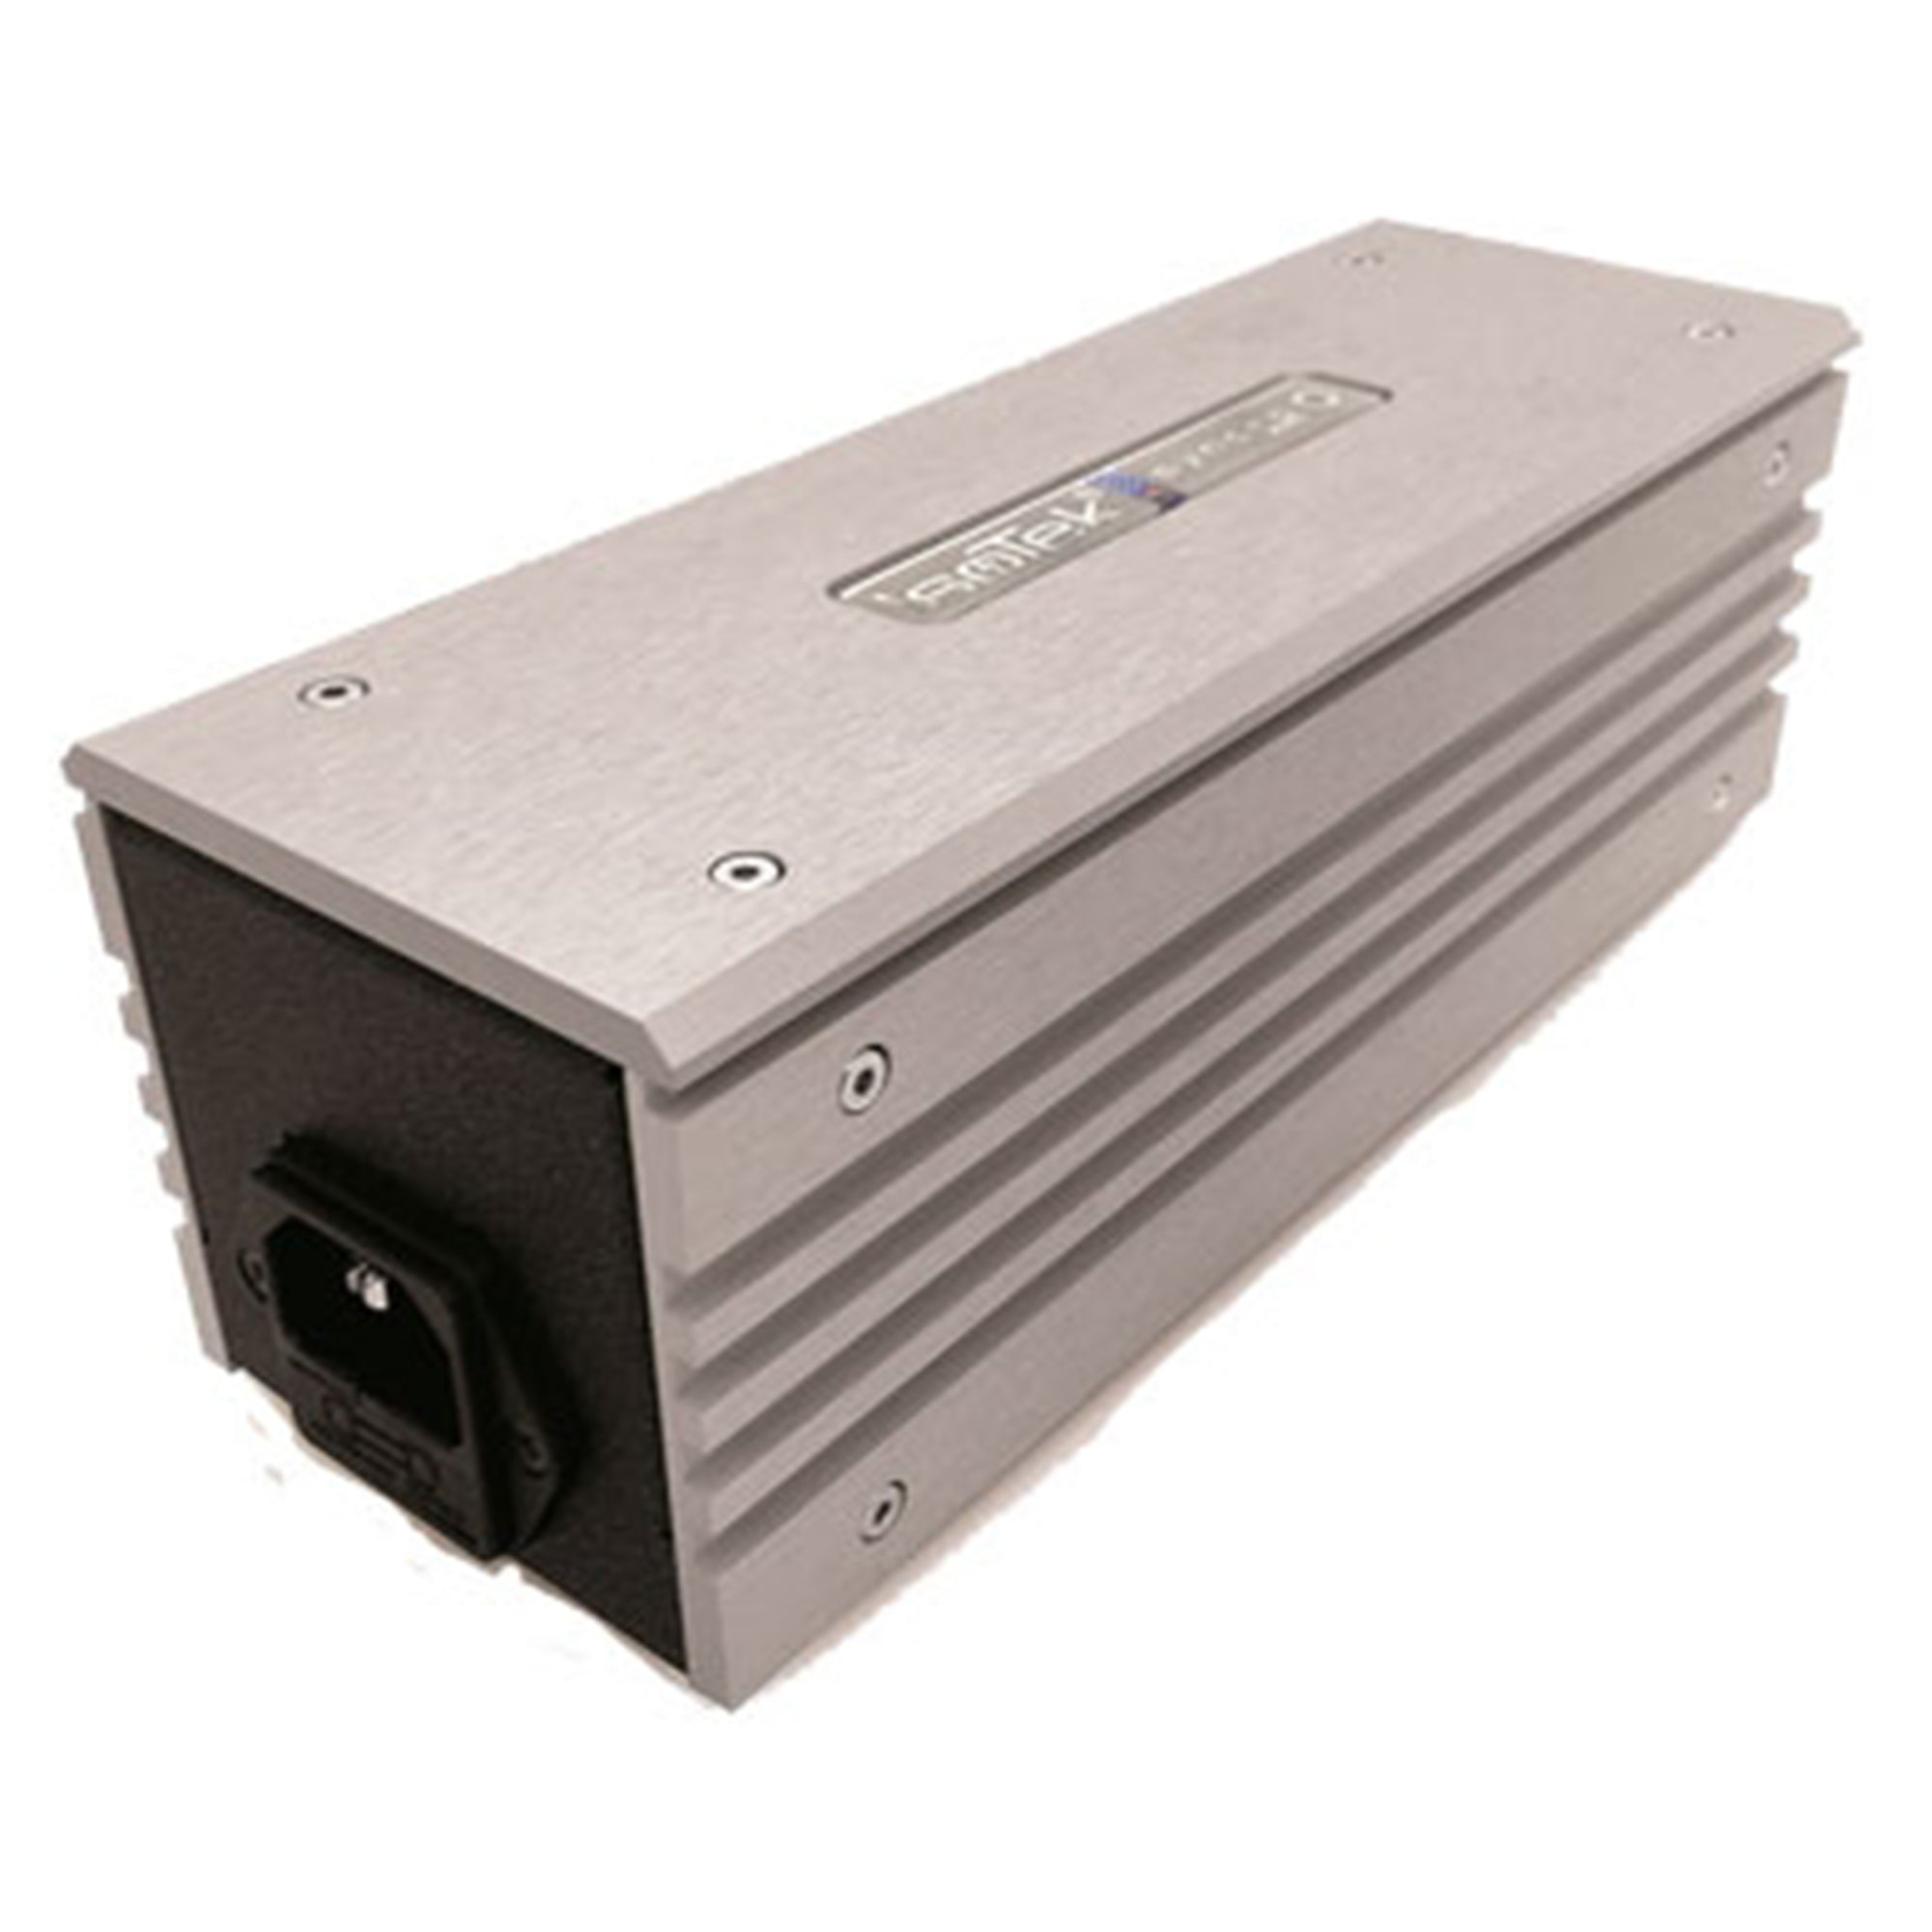 IsoTek EVO3 Syncro Uni Power Conditioner